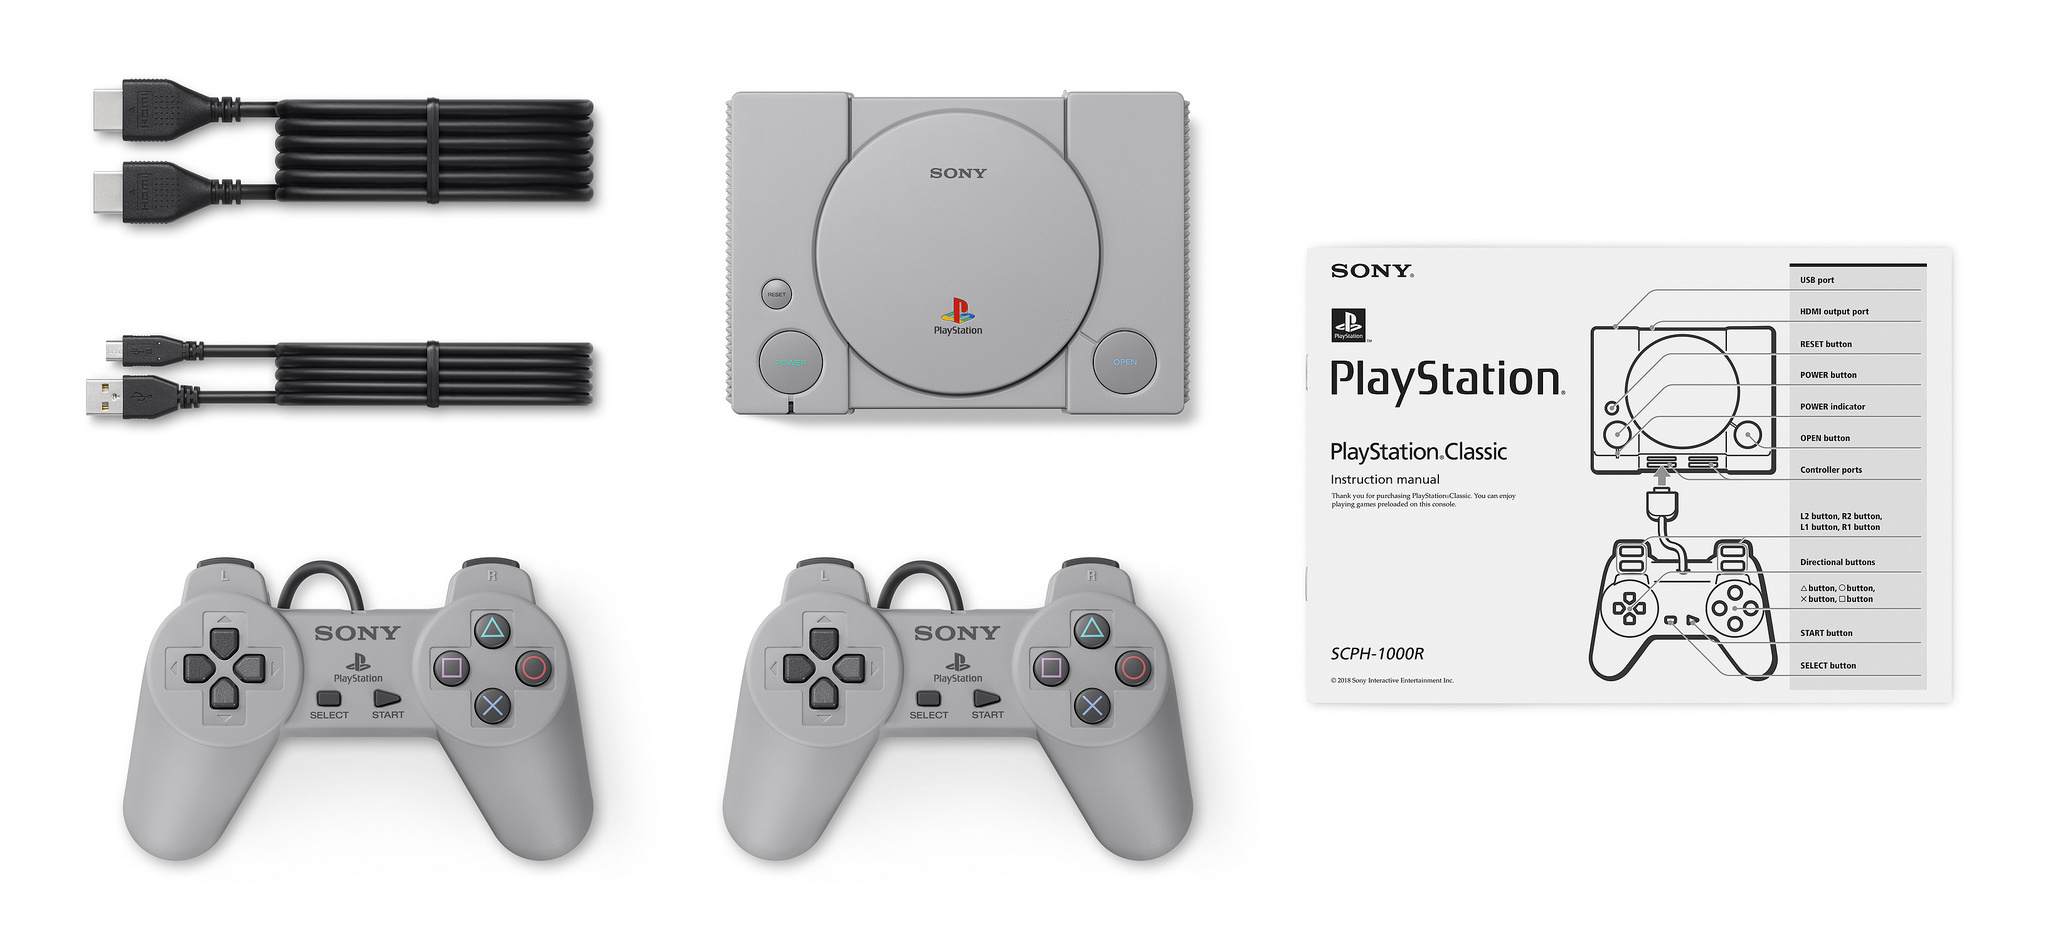 Sony Announces PlayStation Classic Mini Console, Launches 3rd